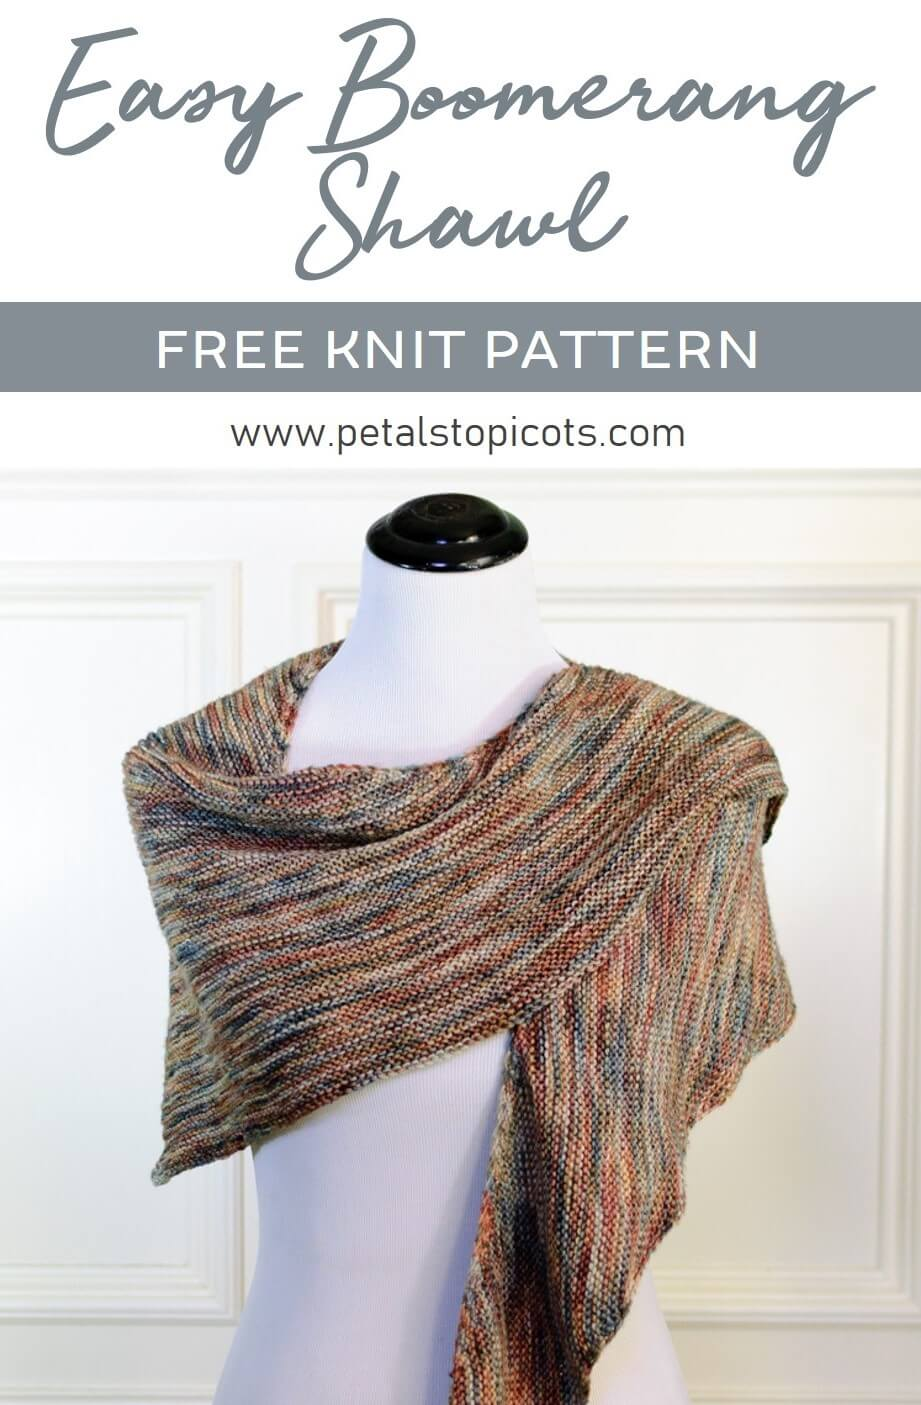 Easy Boomerang Shawl Knit Pattern {With Video Tutorial}